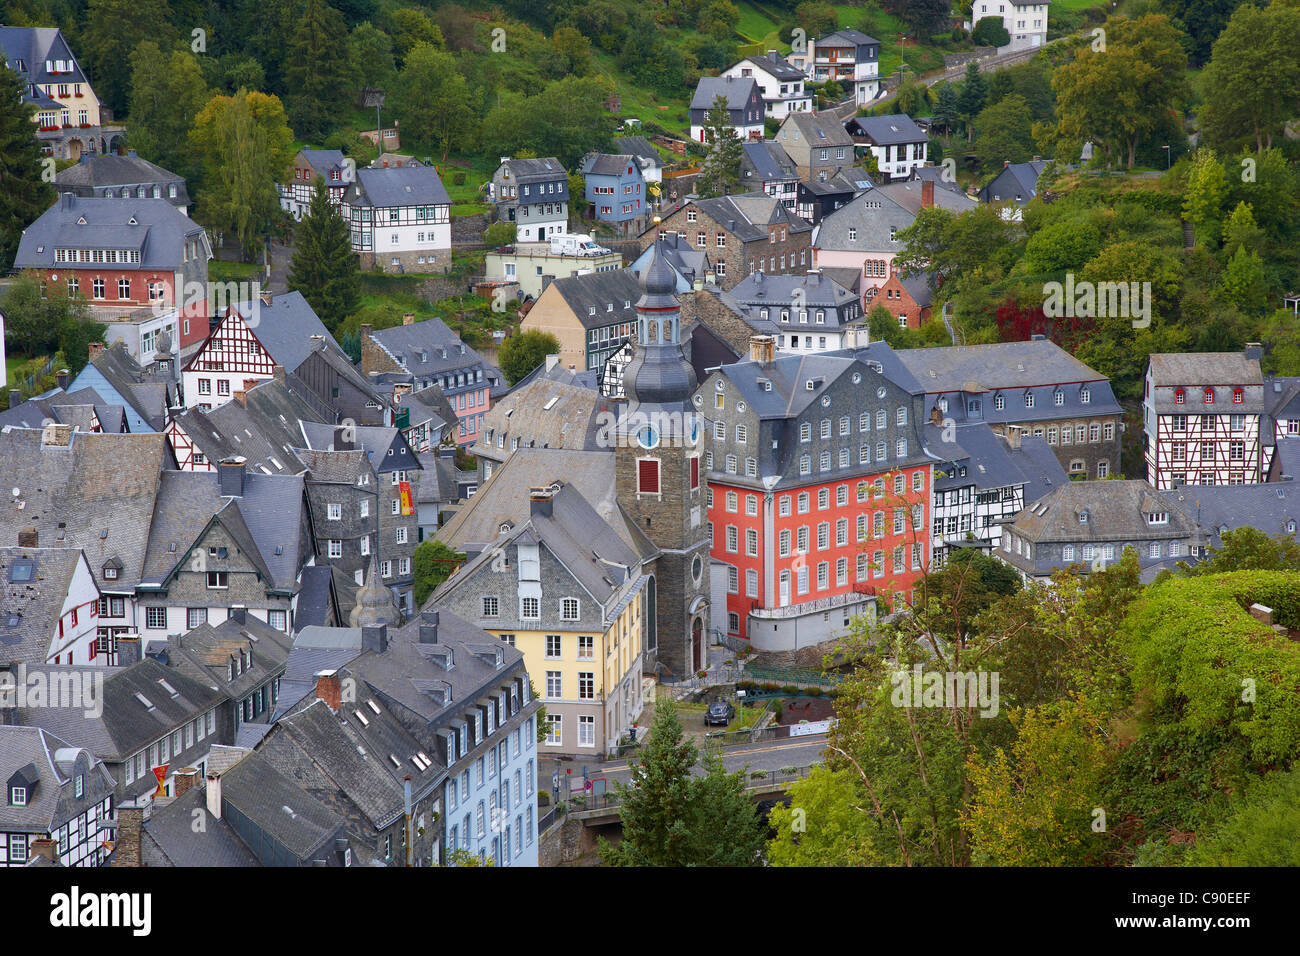 Viewl at Monschau with the Rotes Haus (1756-1765), Eifel, North Rhine-Westfalia, Germany, Europe - Stock Image